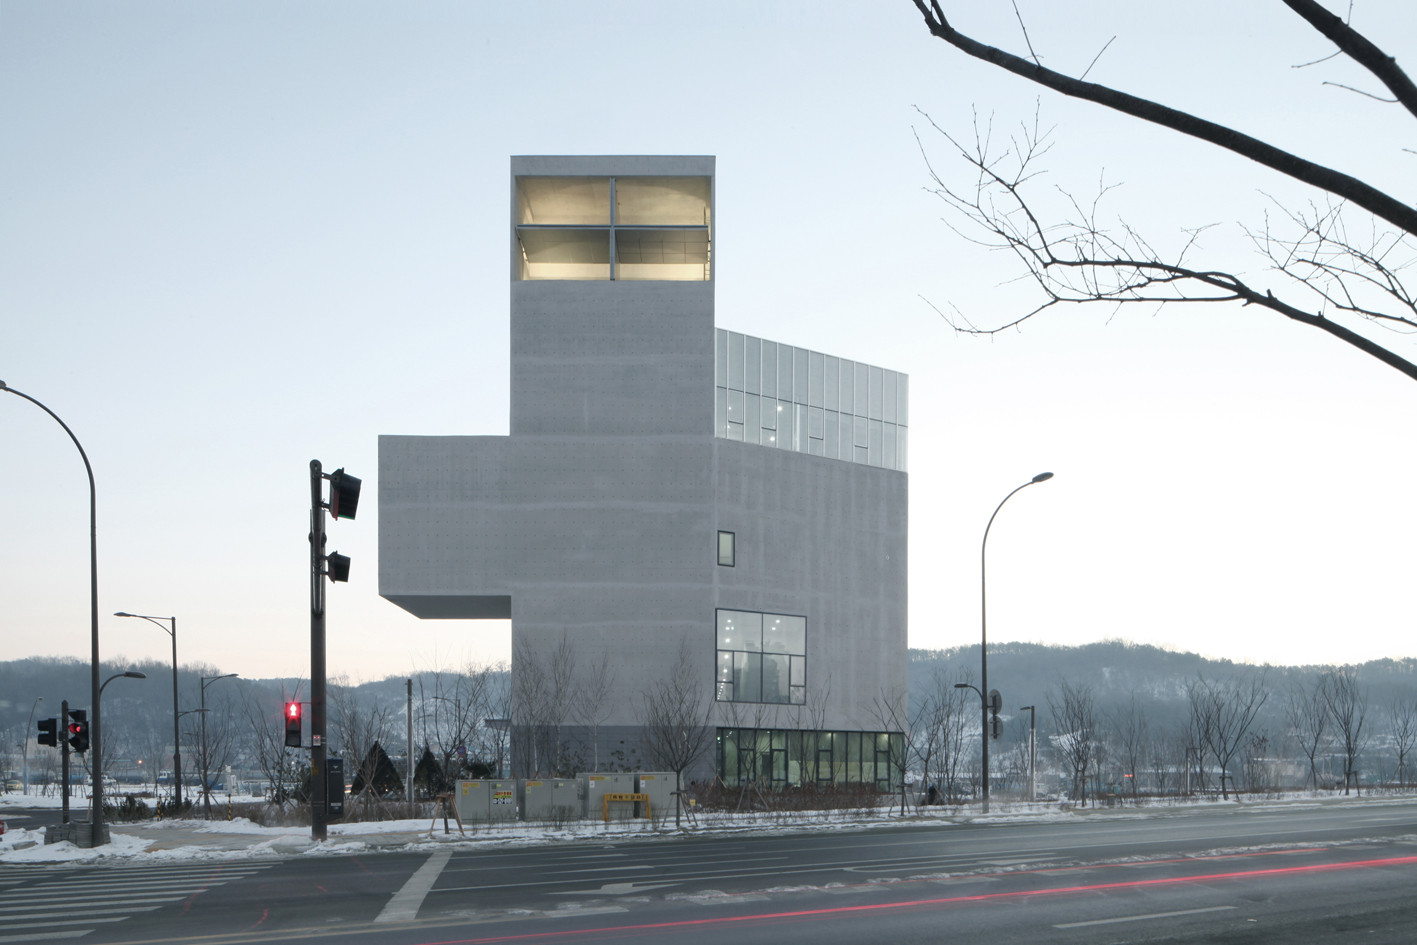 rw_concrete_church-nameless-architecture-06